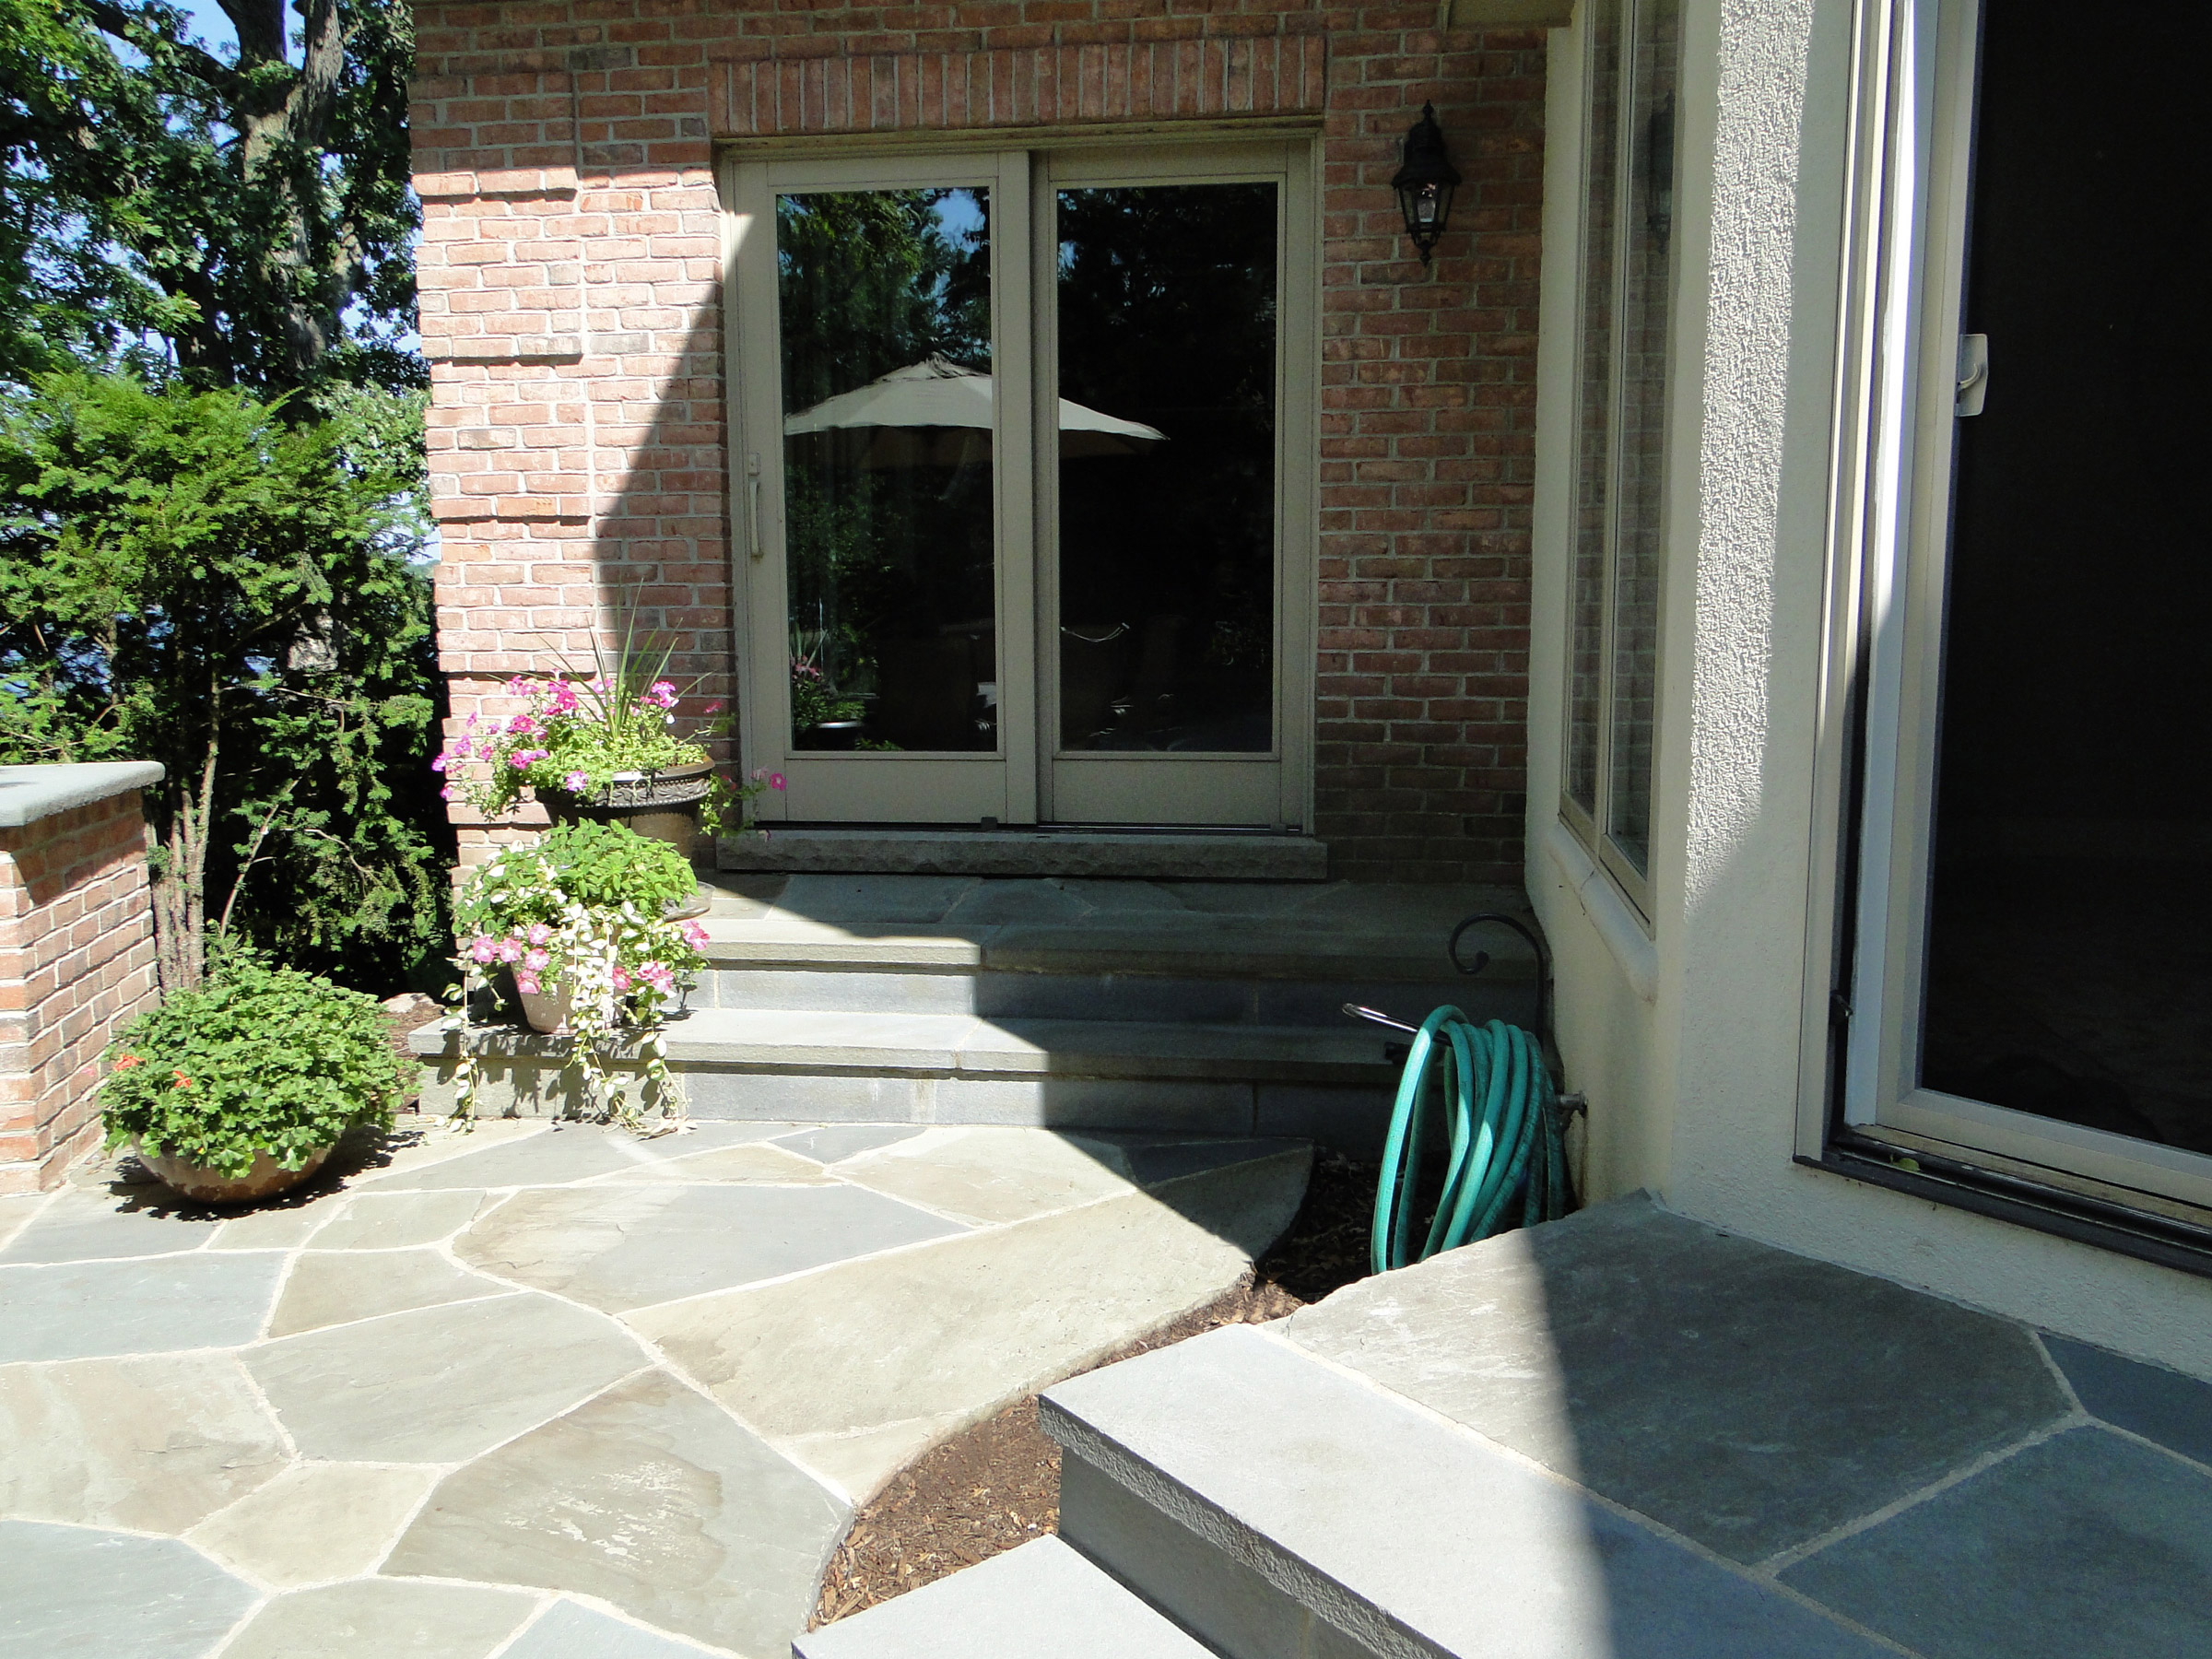 Expert craftsmanship form this blue stone step into the home